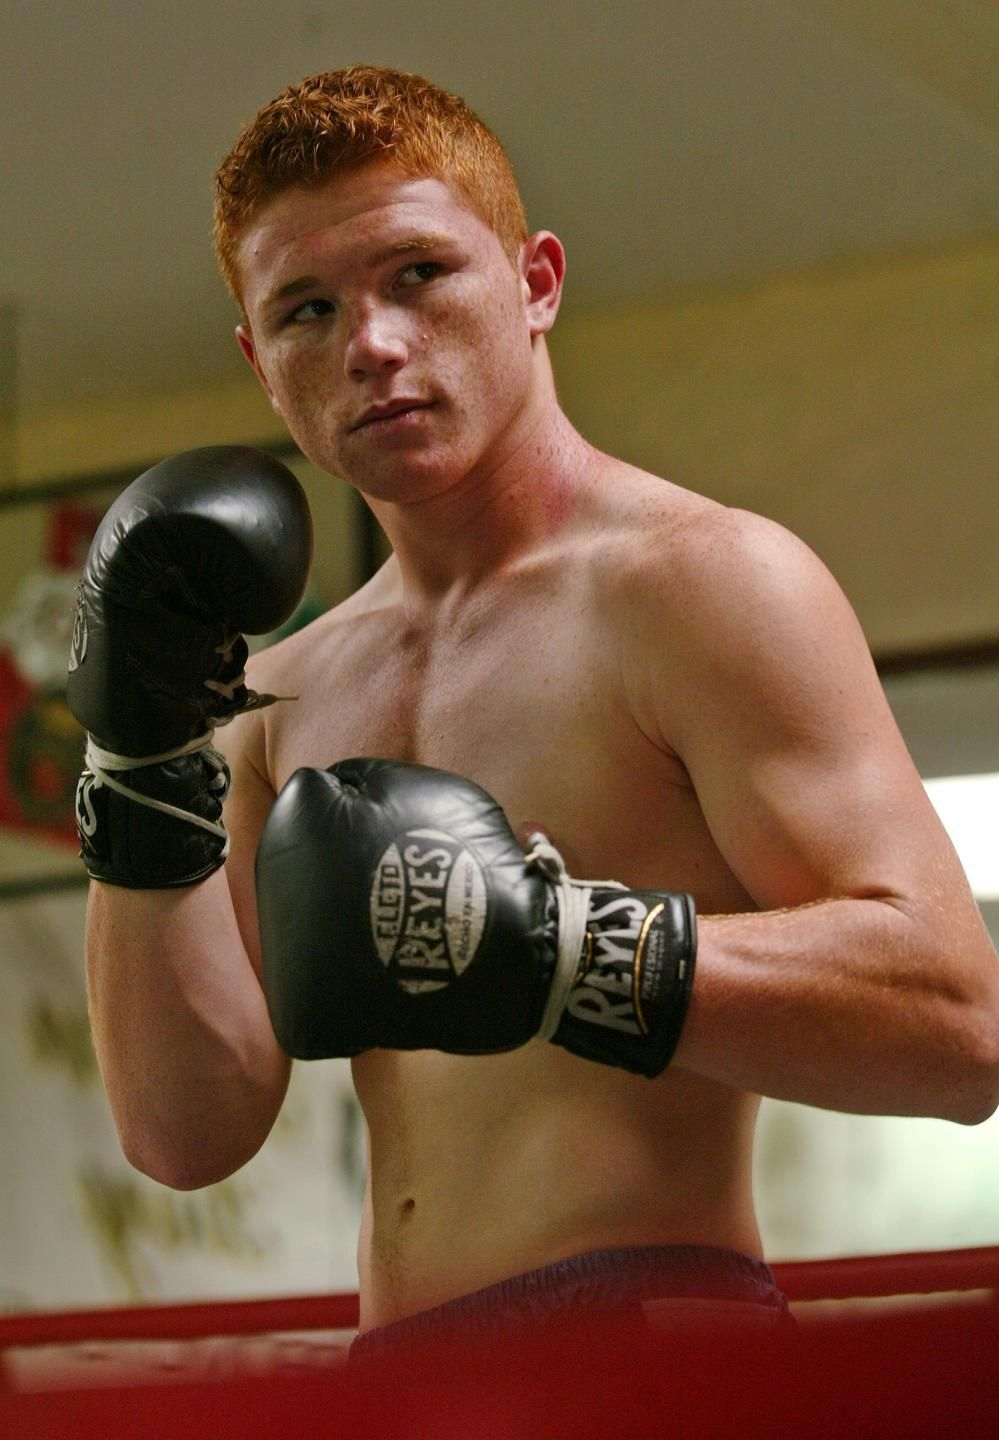 Saul Canelo Alvarez Is An Undefeated Mexican Professional Boxer In